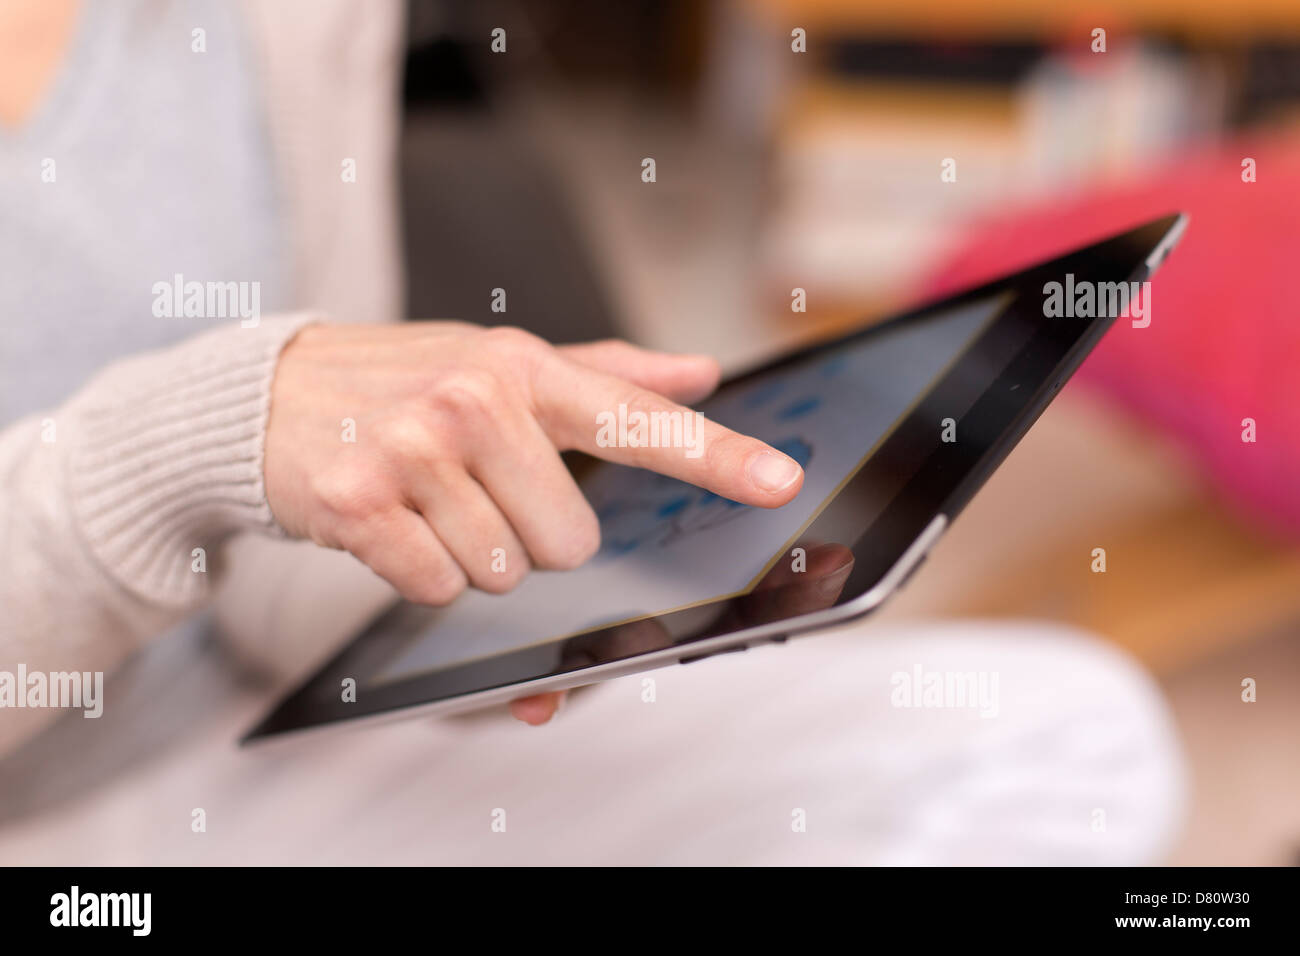 Female holding digital tablet, closeup - Stock Image